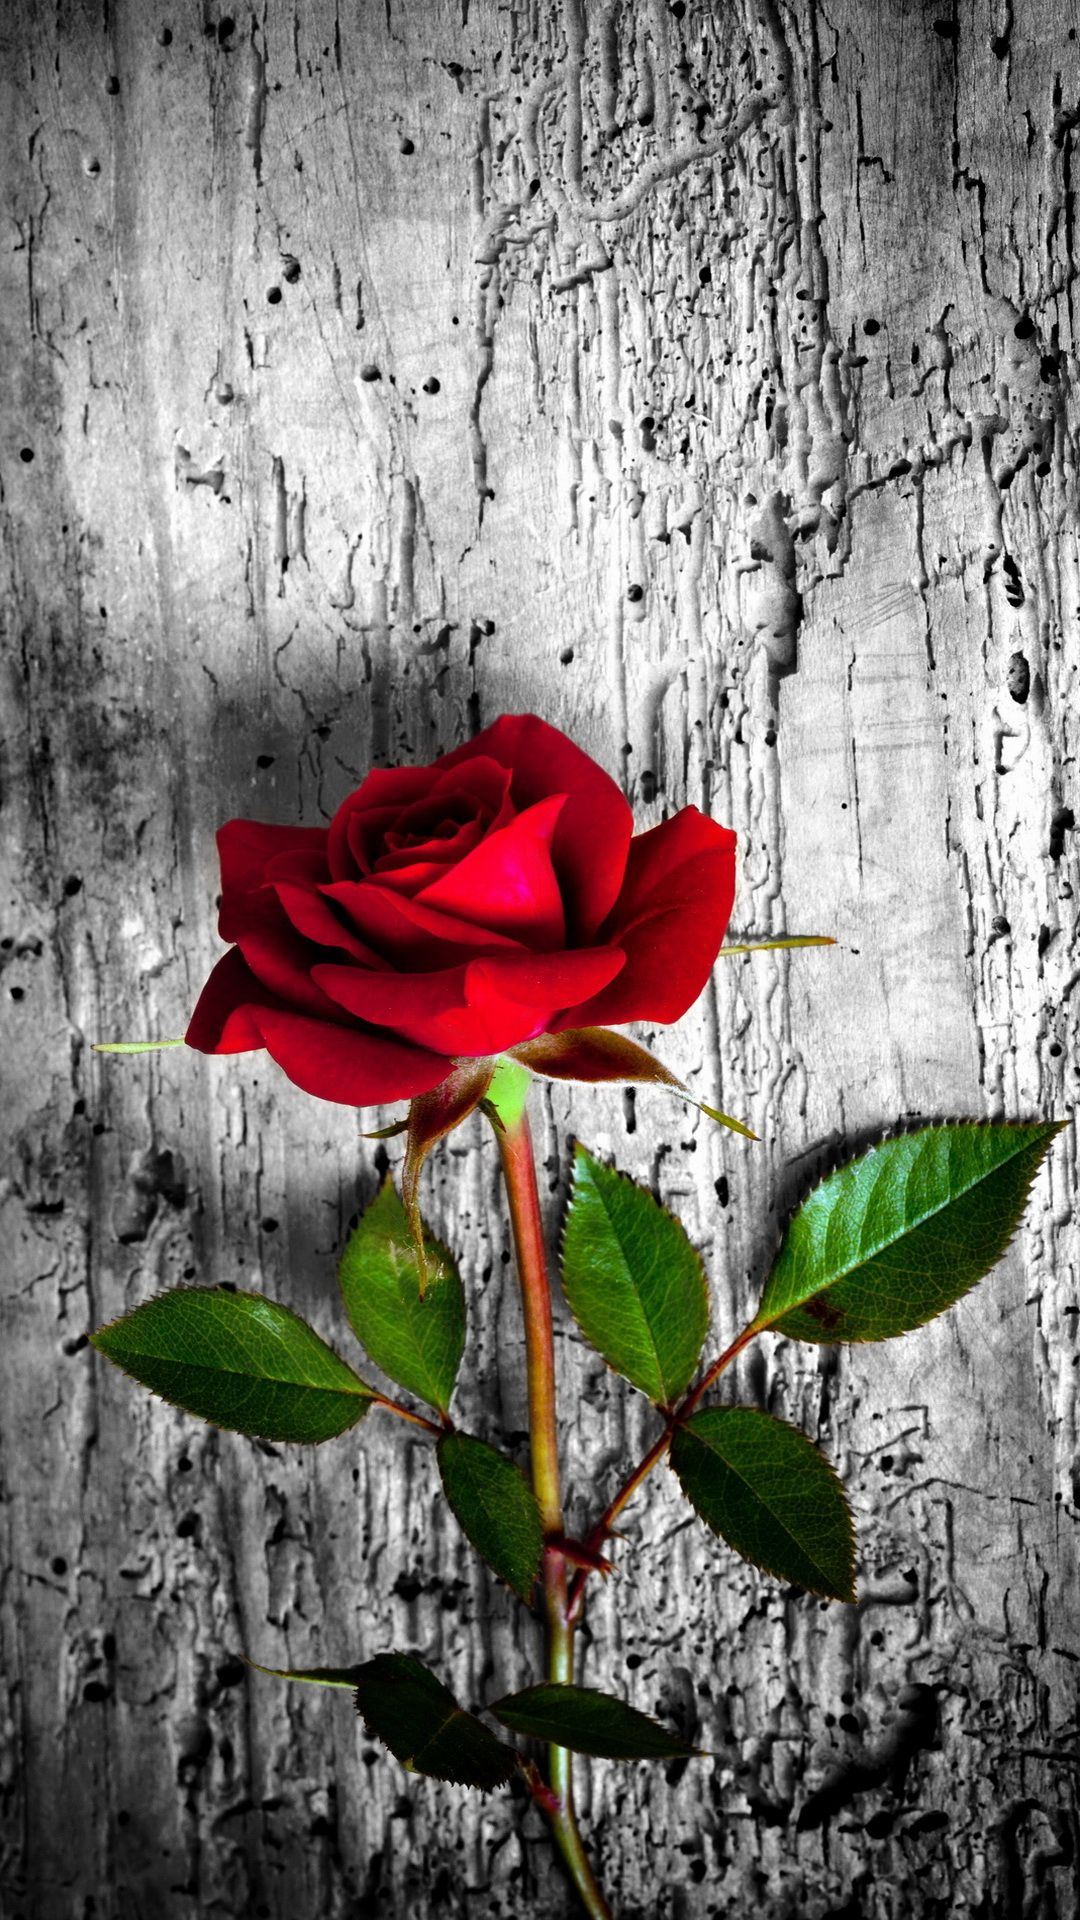 26 happy valentines day rosesflowers wallpapers for iphone mobile9